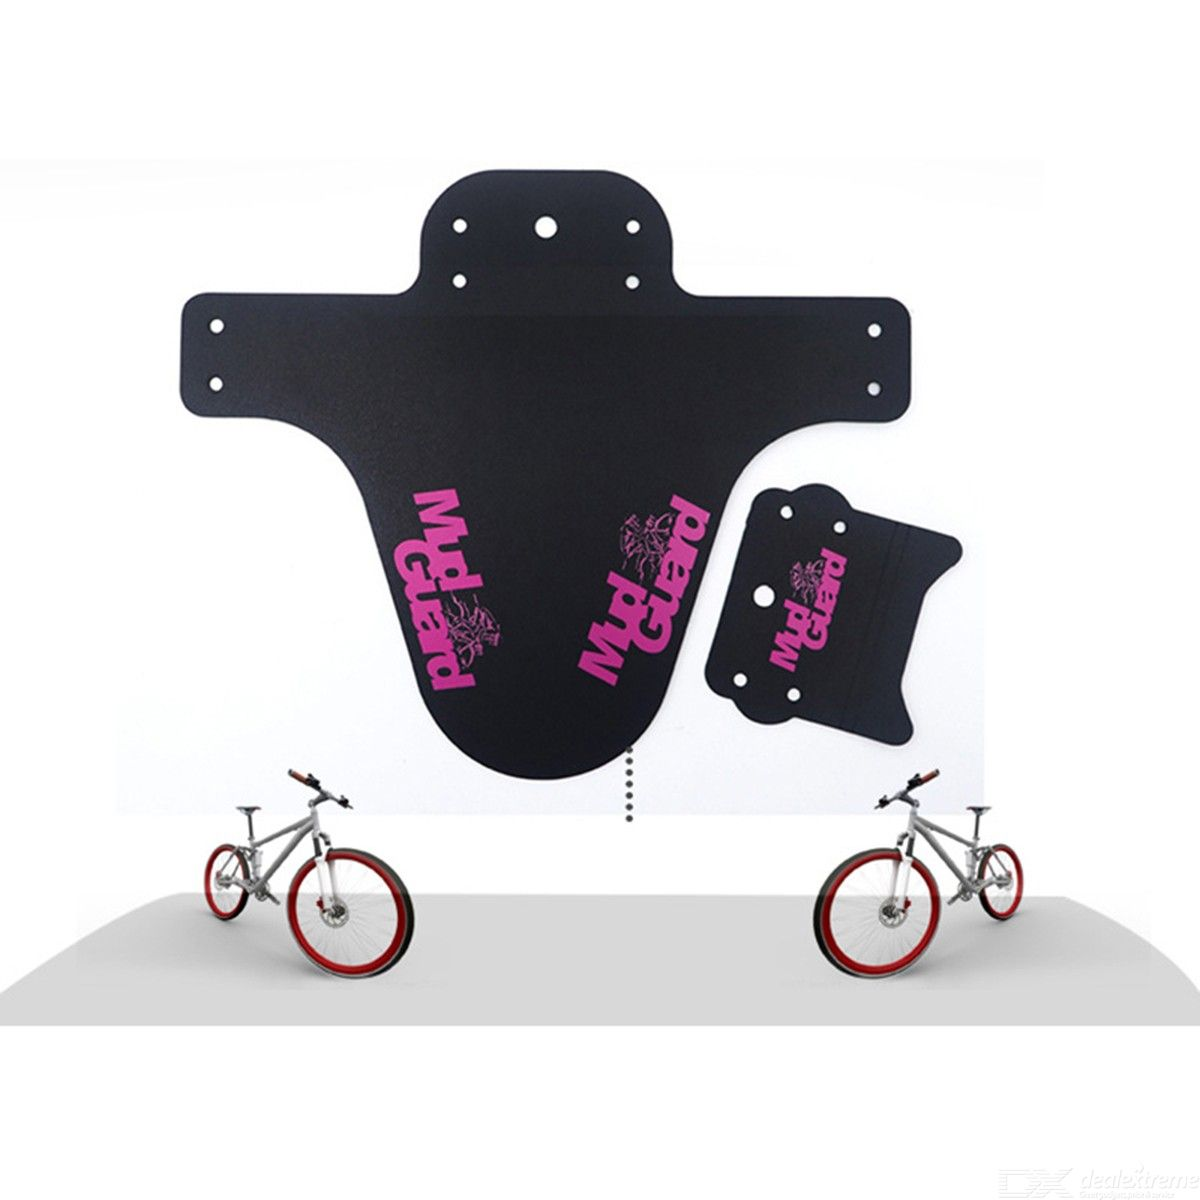 Mountain Bike Fenders Road Bikes Downhill Bicycle Mud Guard Removal Cycling Accessories